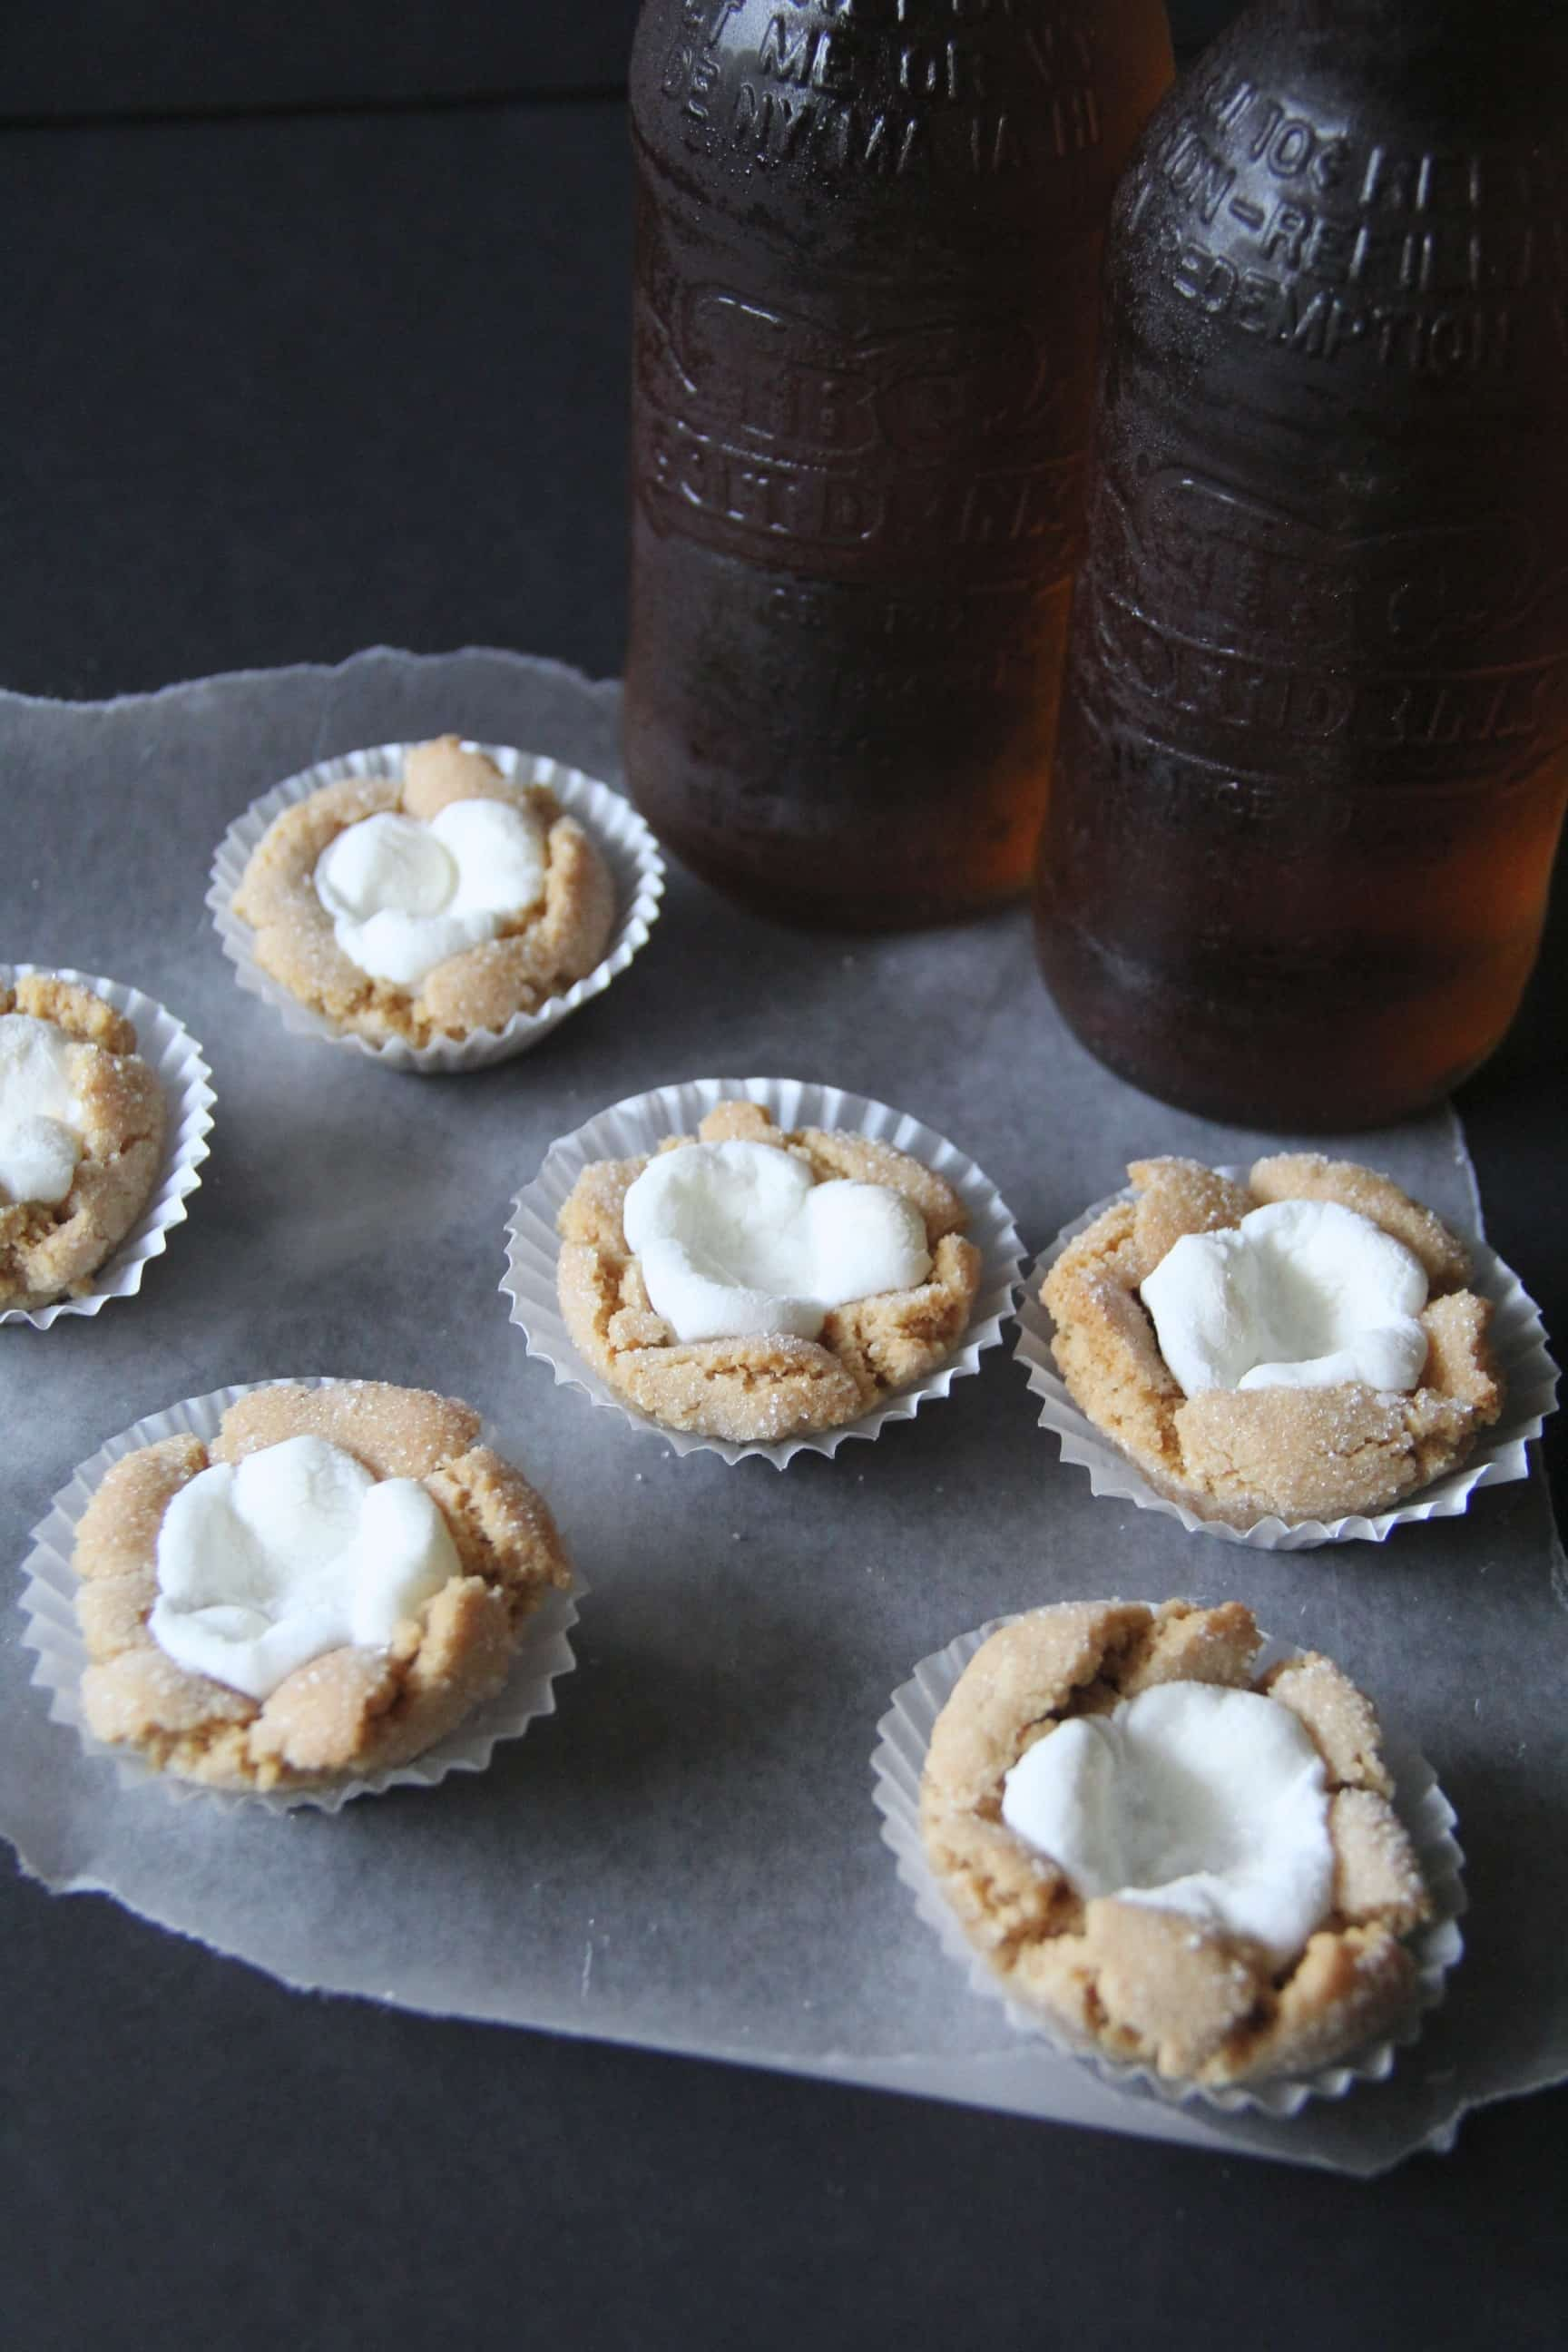 Marshmallow Cookies with Cream Soda